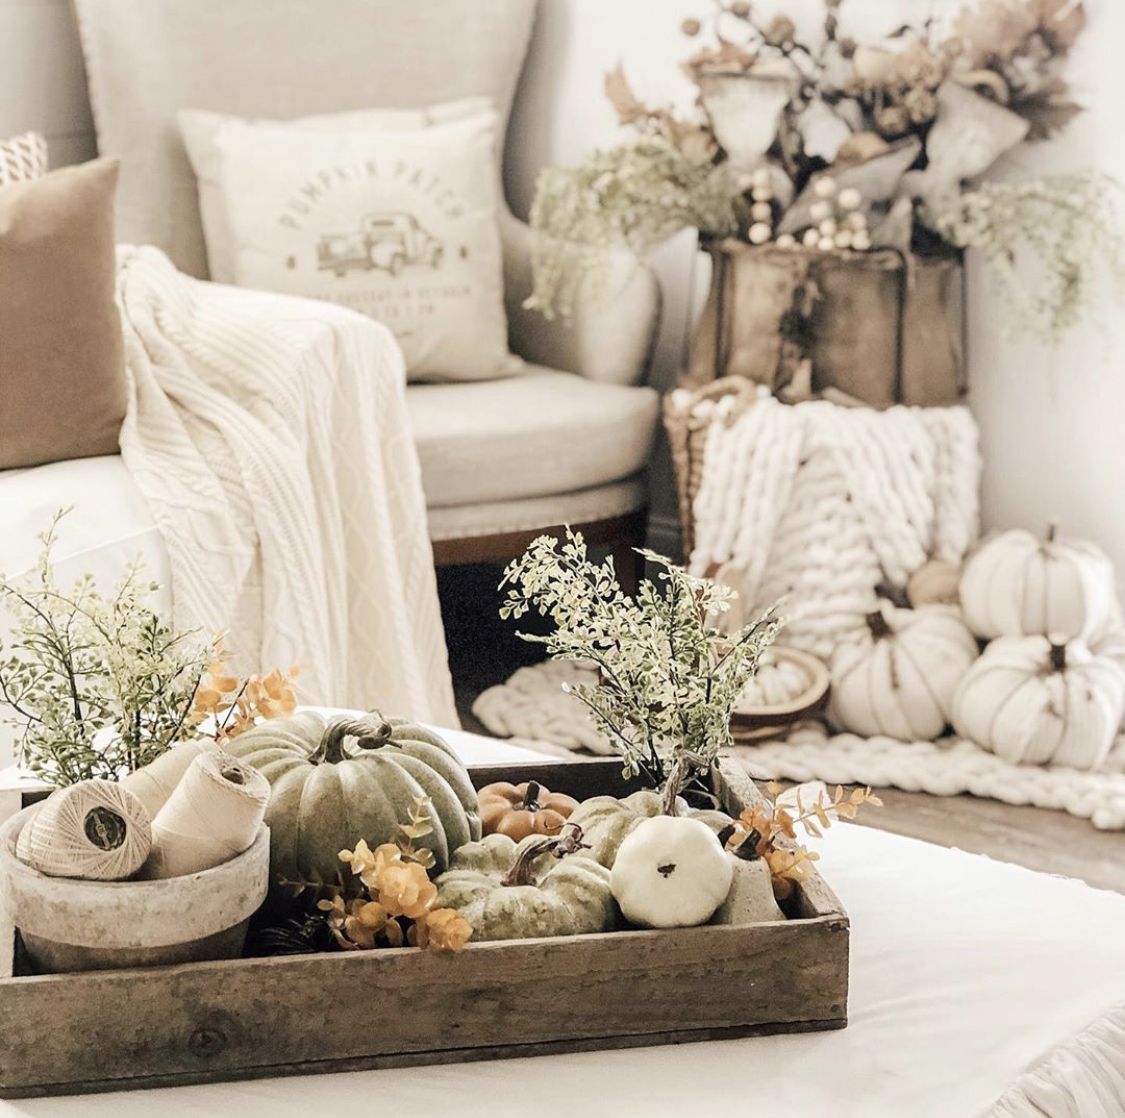 15 Fall Decorating Ideas To Spice Up Your Home Harvest Autumn Decor Tips